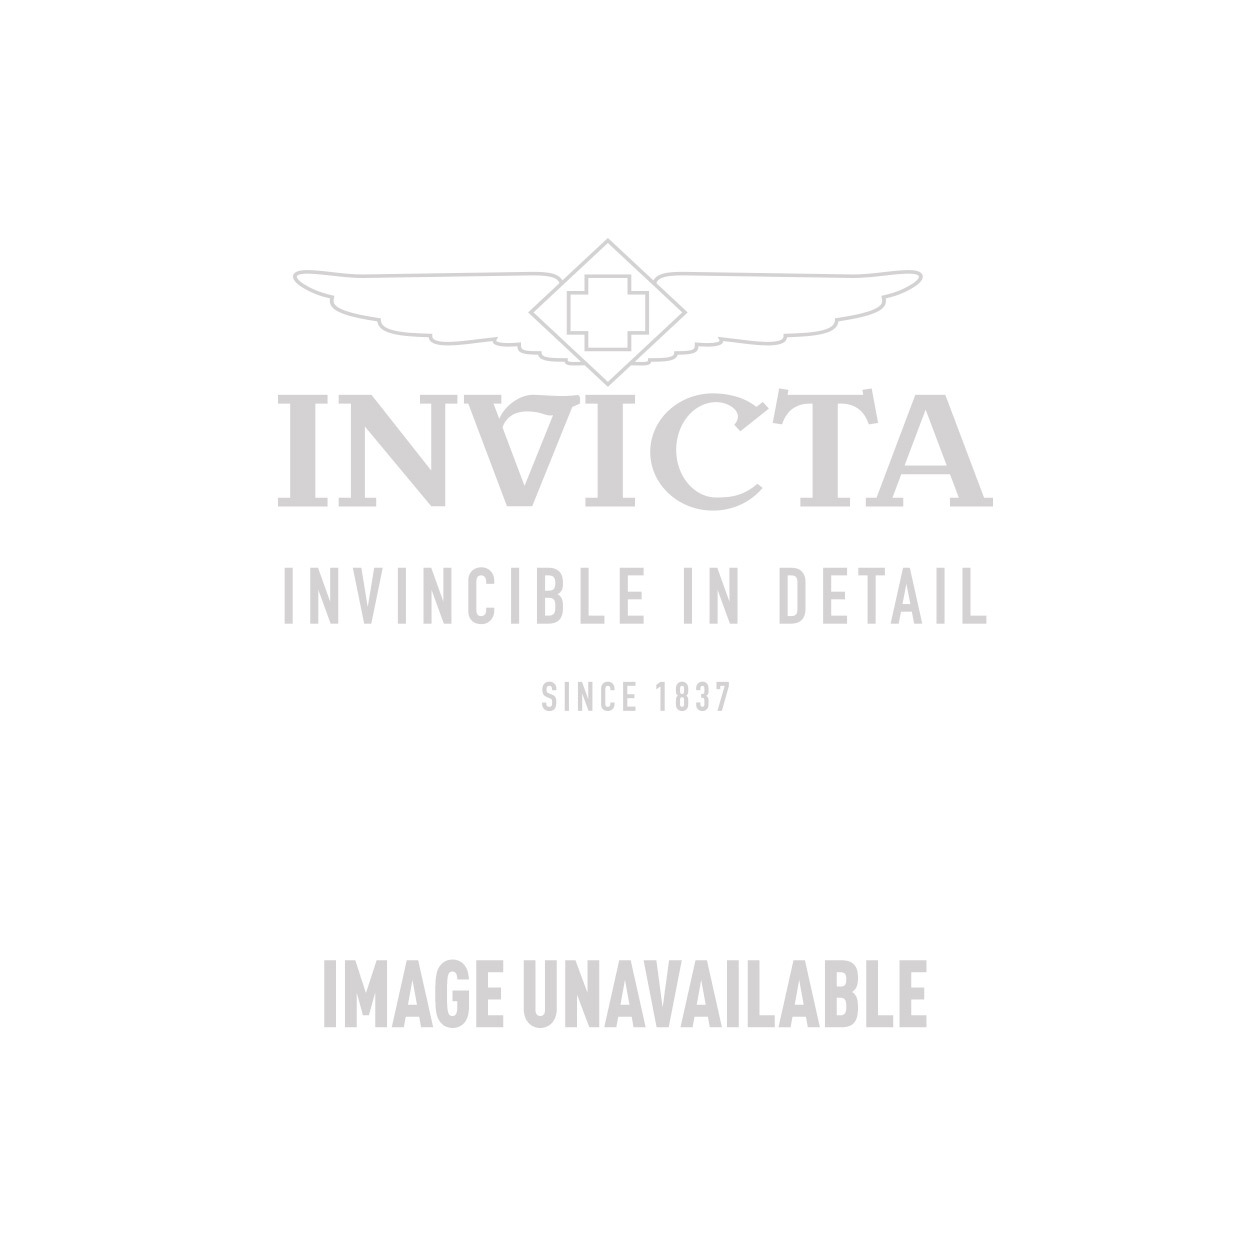 Invicta Angel Swiss Movement Quartz Watch - Gold, Stainless Steel case with Steel, Gold tone Stainless Steel band - Model 13725